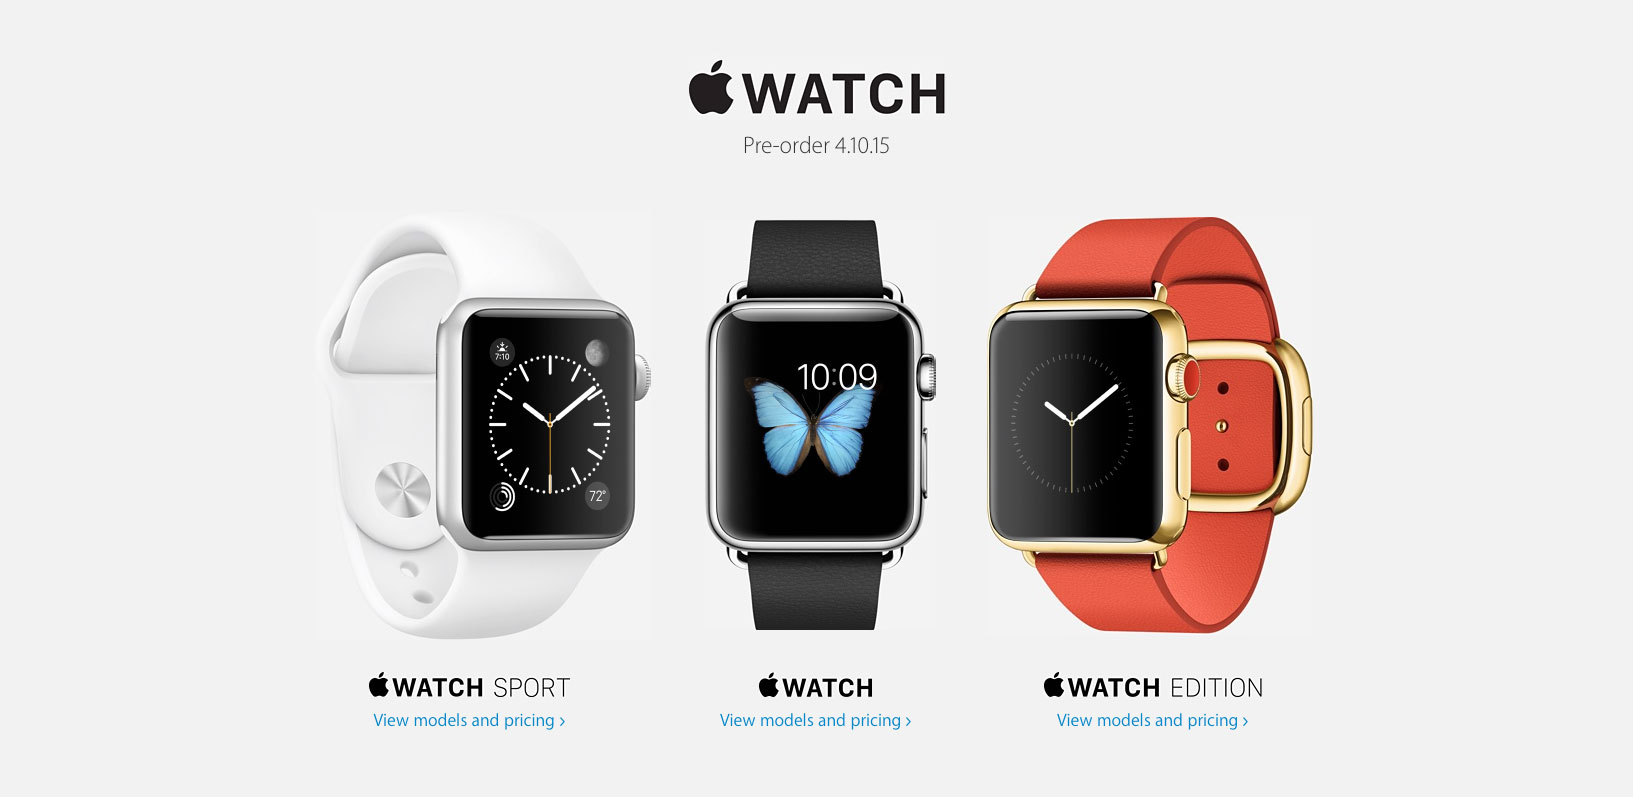 A new report says many Apple Watch models will be in short supply at launch